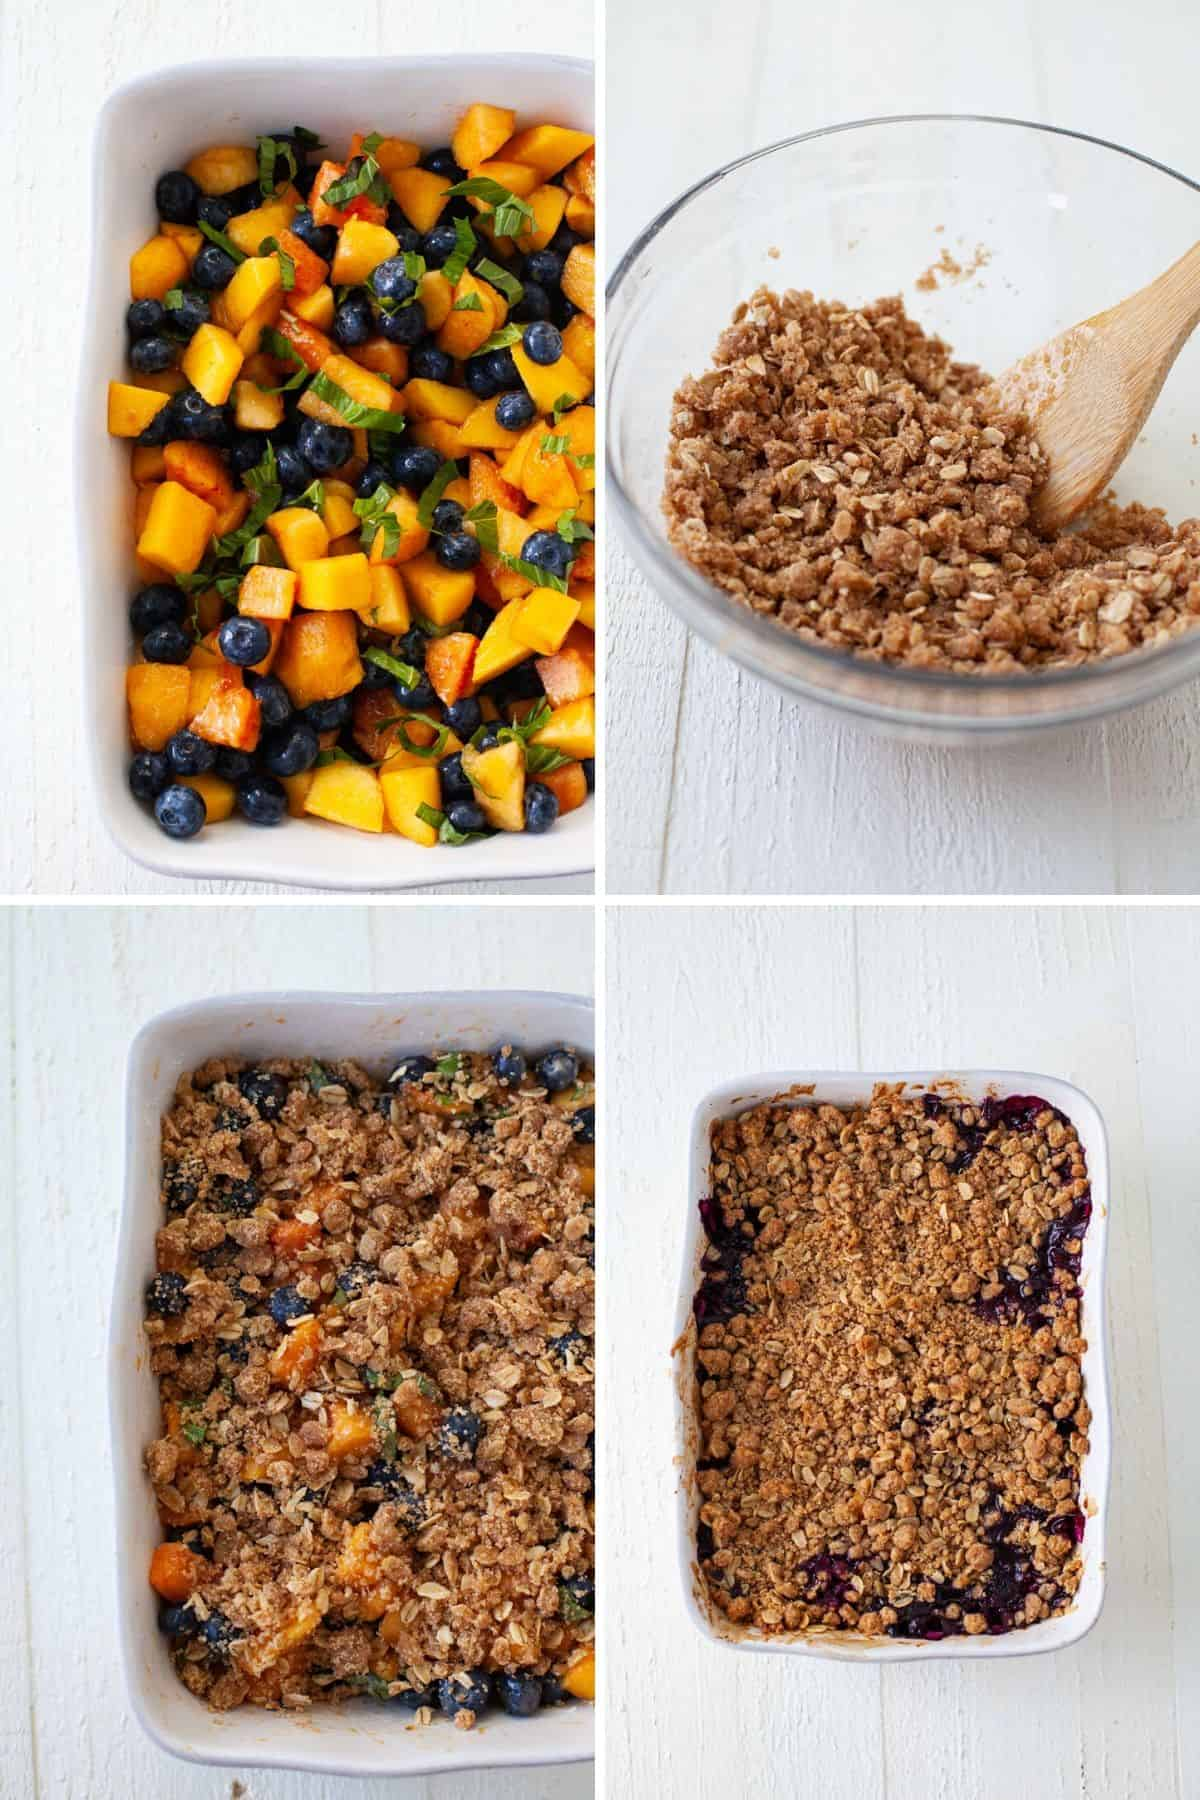 four photos showing the process of making blueberry peach crisp with baking dish and mixing bowl